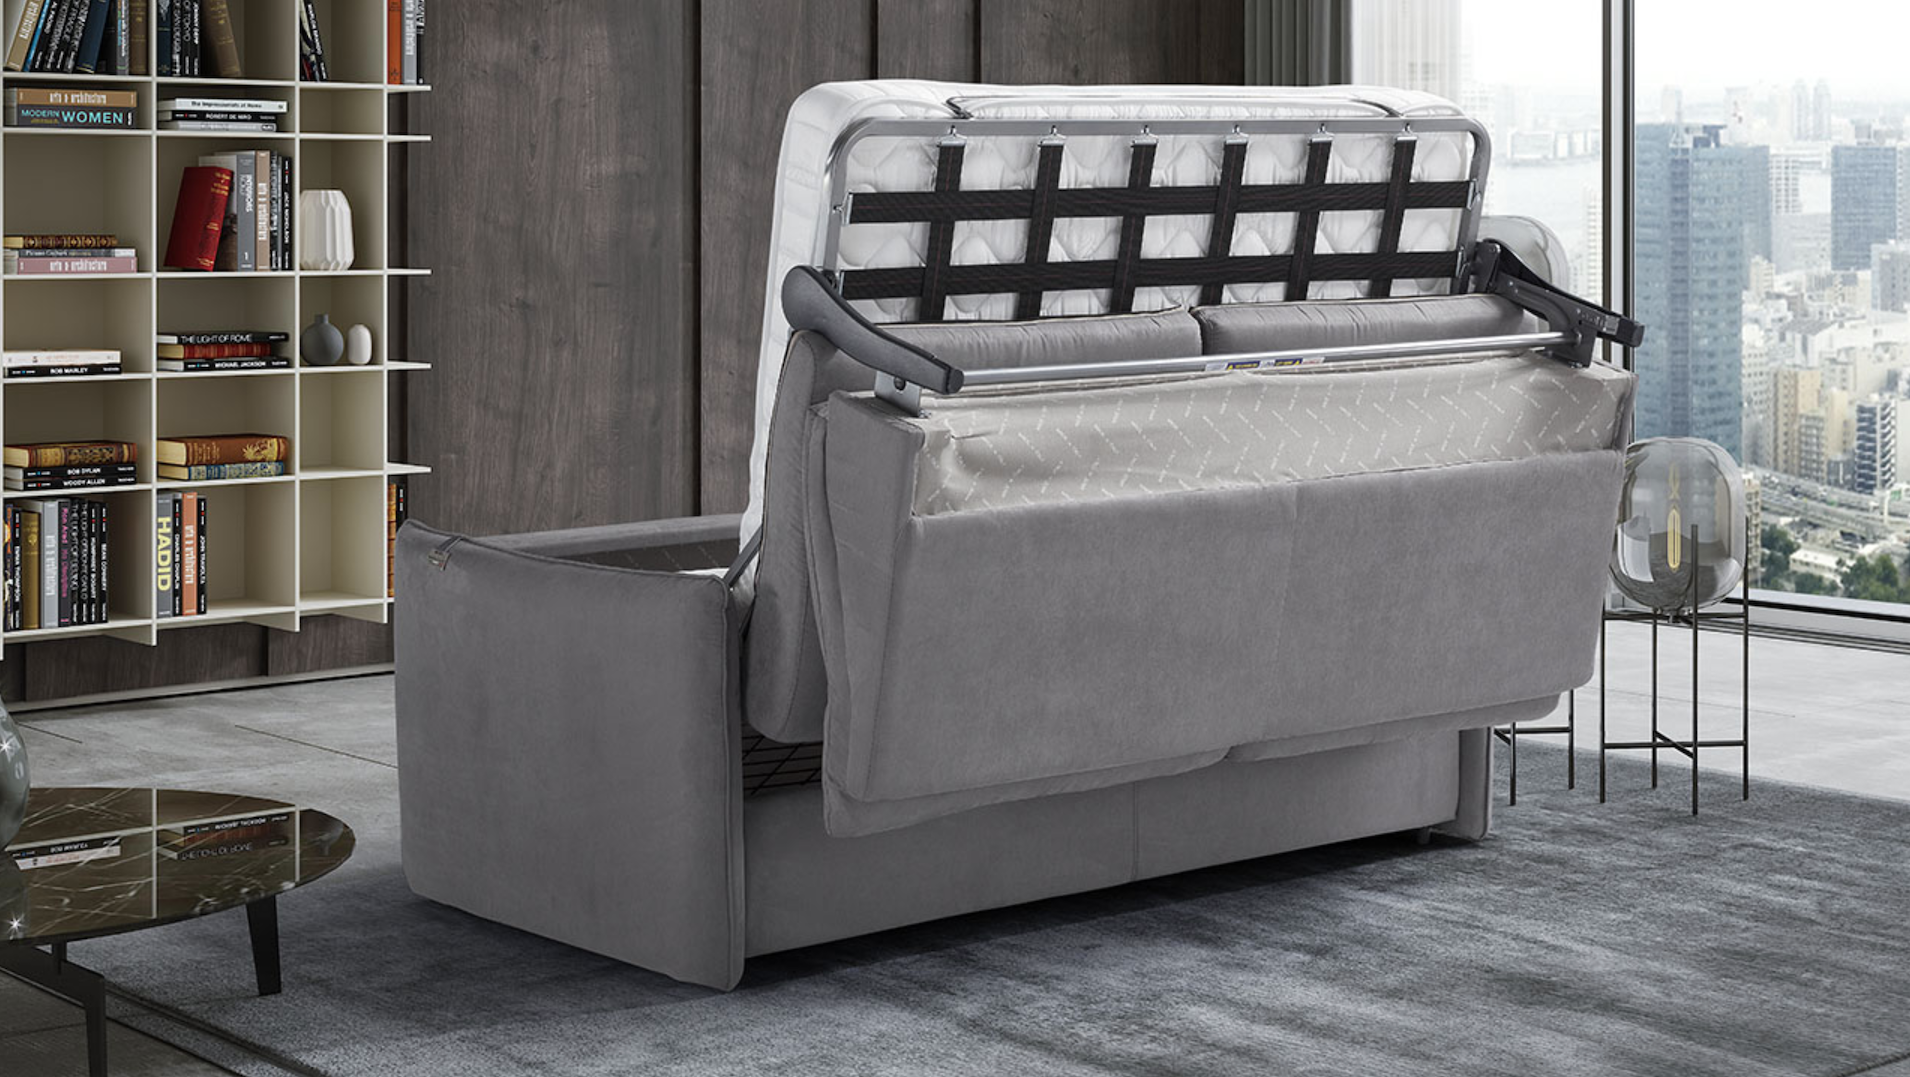 AIMEE Italian Crafted 3 Seat Sofa Bed in PLAZA GREY. RRP £1979 - Image 4 of 5